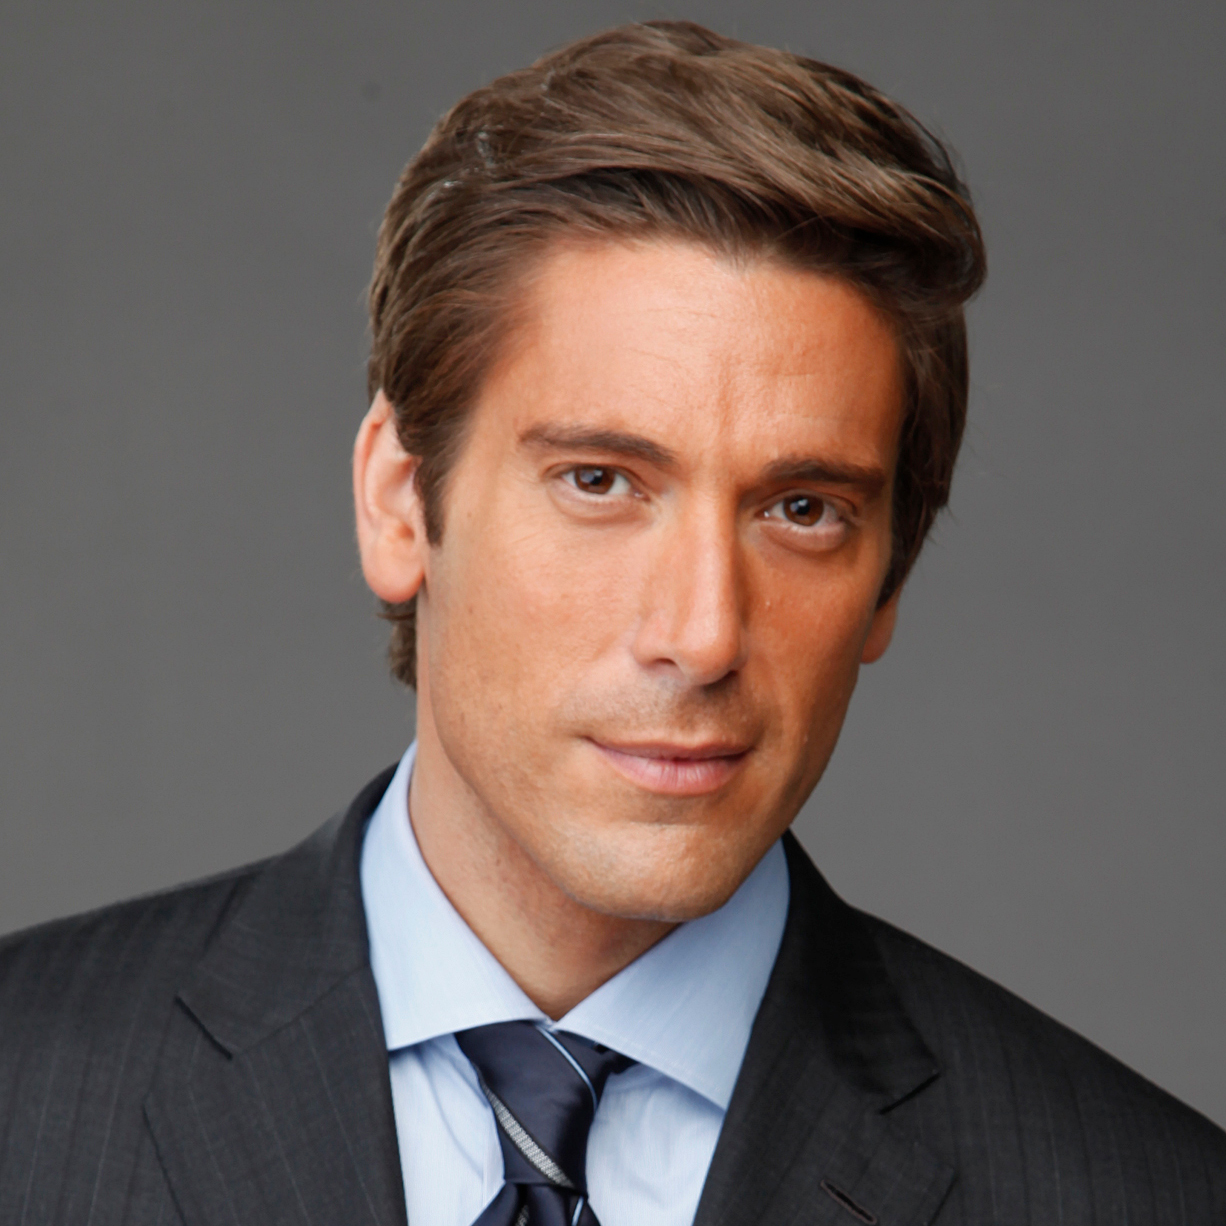 muir single personals David muir is not married to date and isn't dating any girlfriend some portal relating to his biography suggests that he is gay some portal relating to his biography suggests that he is gay however, no any exact information has been revealed officially.